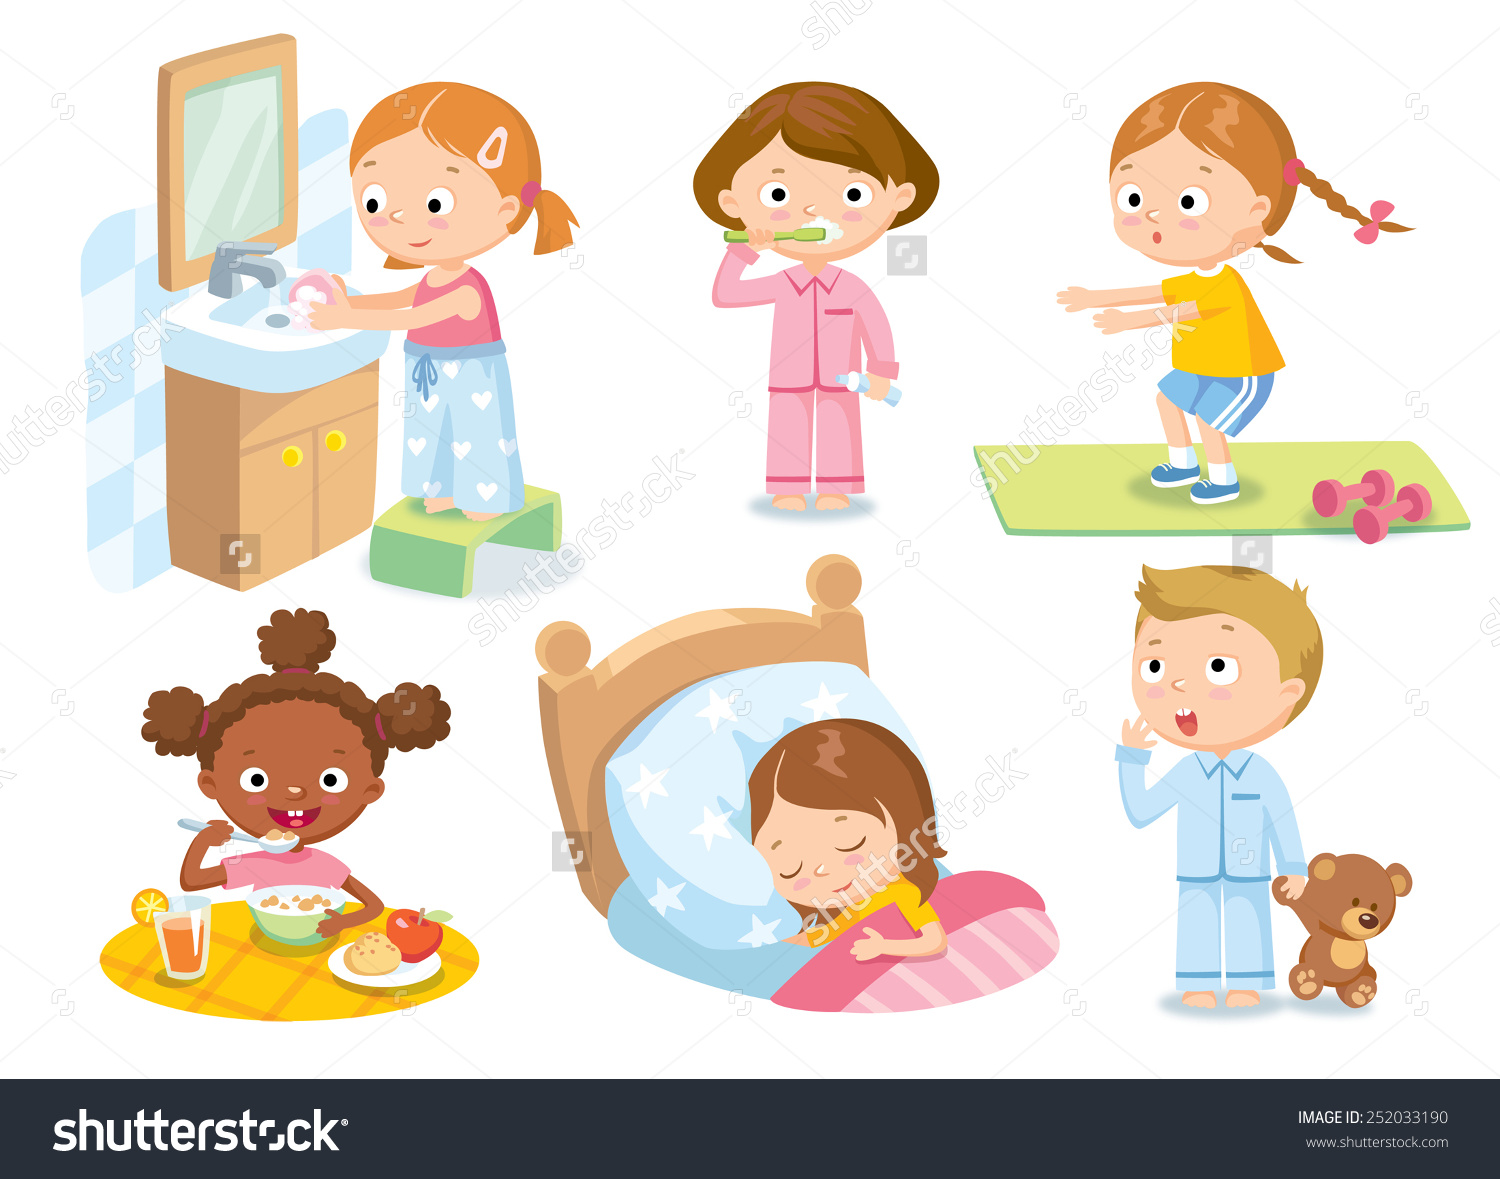 Clipart daily routine picture royalty free download Daily routine clipart 8 » Clipart Station picture royalty free download